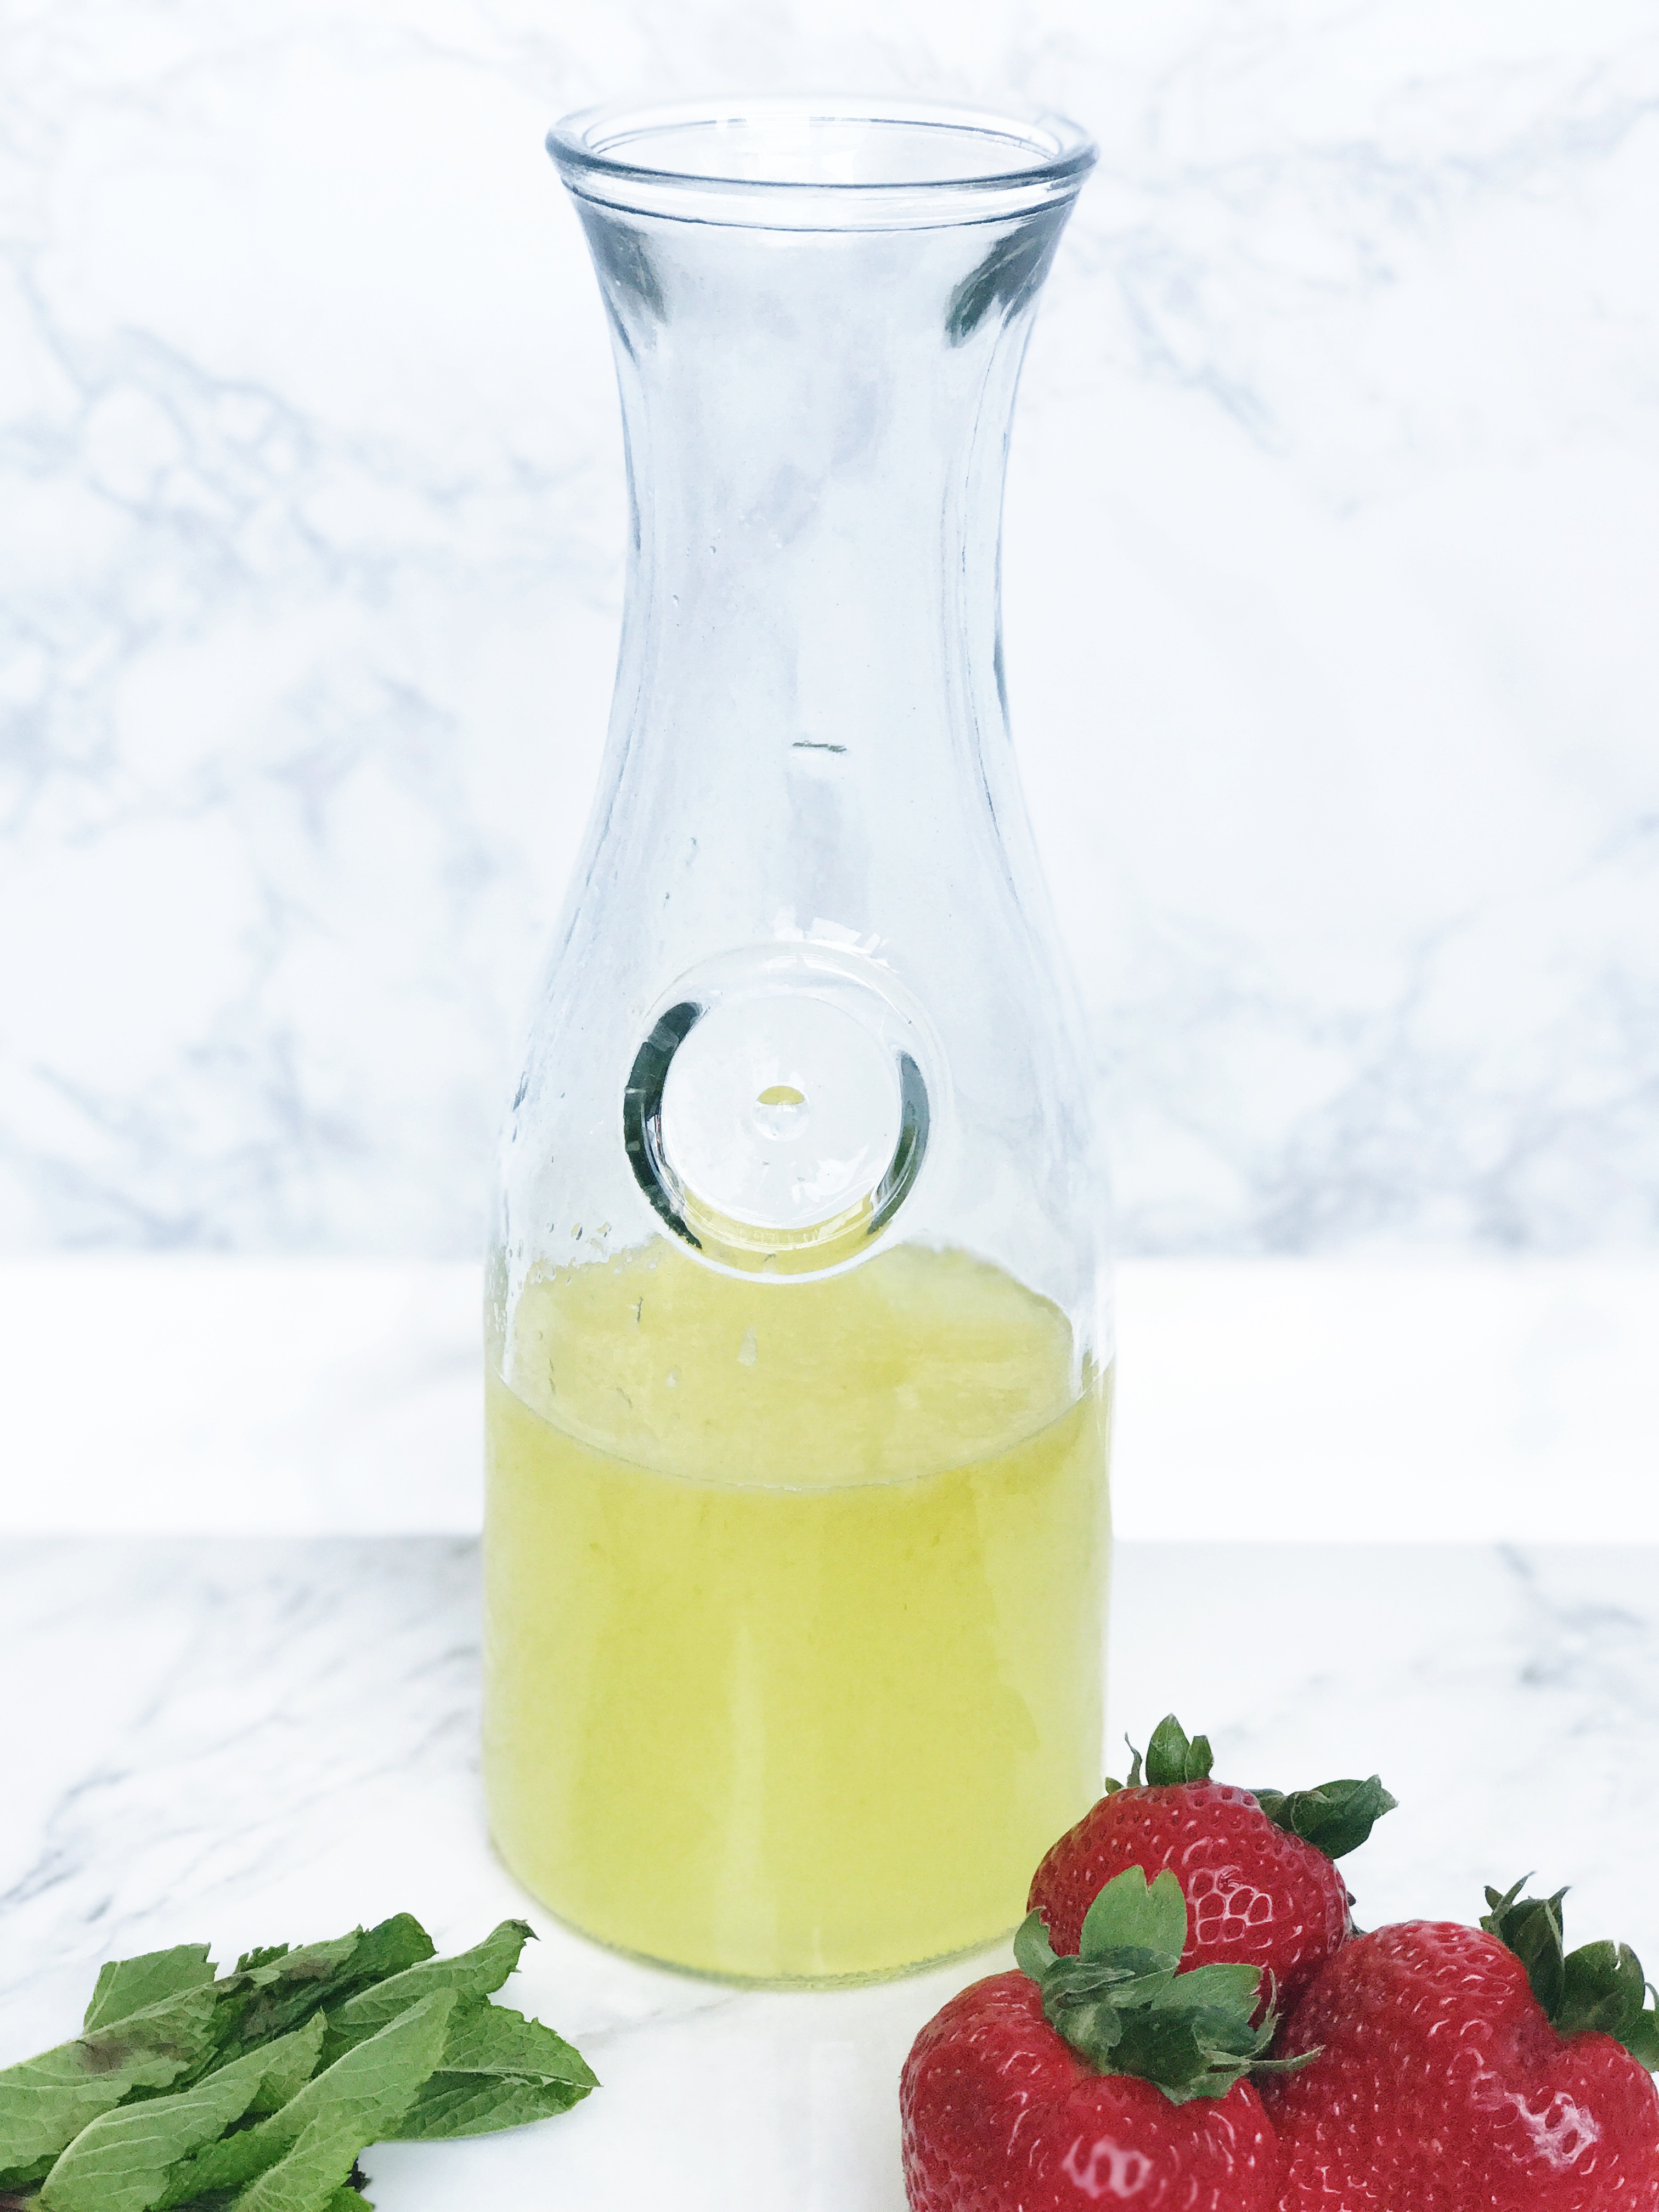 ingredients for strawberry martini made with lemoncello and mint